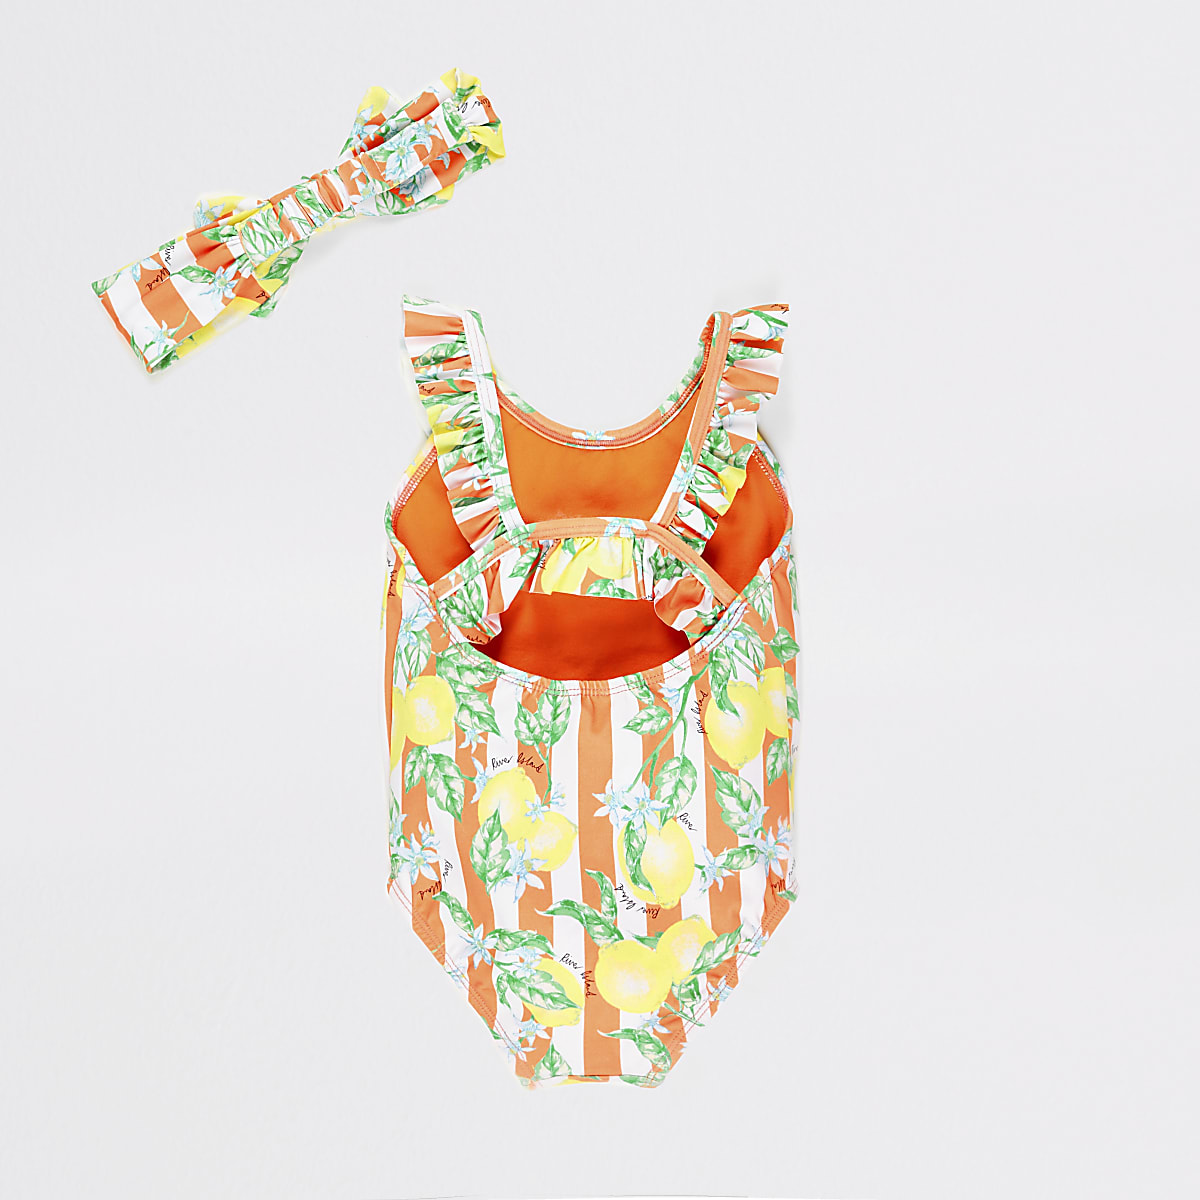 bf4551cd3e772 Mini girls orange lemon print swimsuit set - Baby Girls Swimwear ...